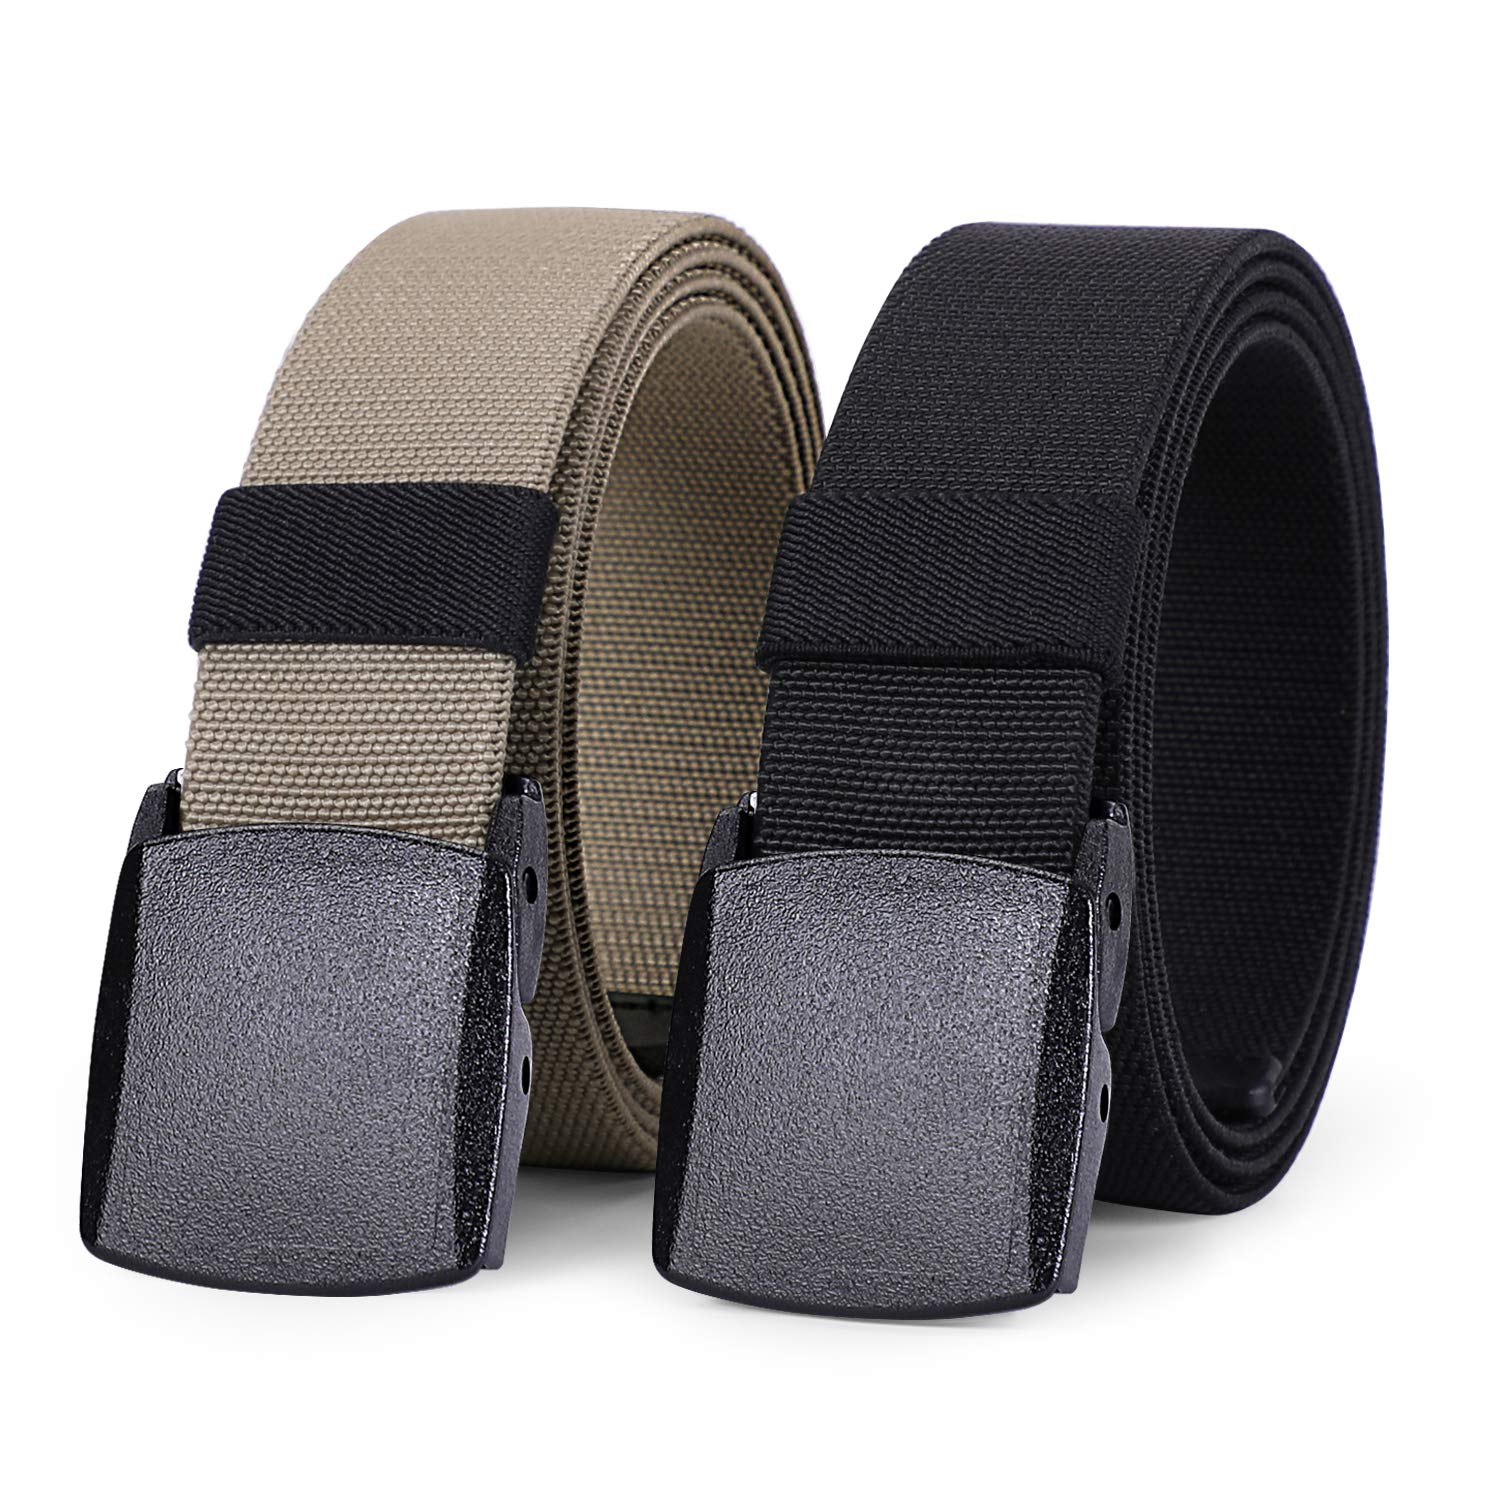 Great Price - Adjustable - Nice Belts